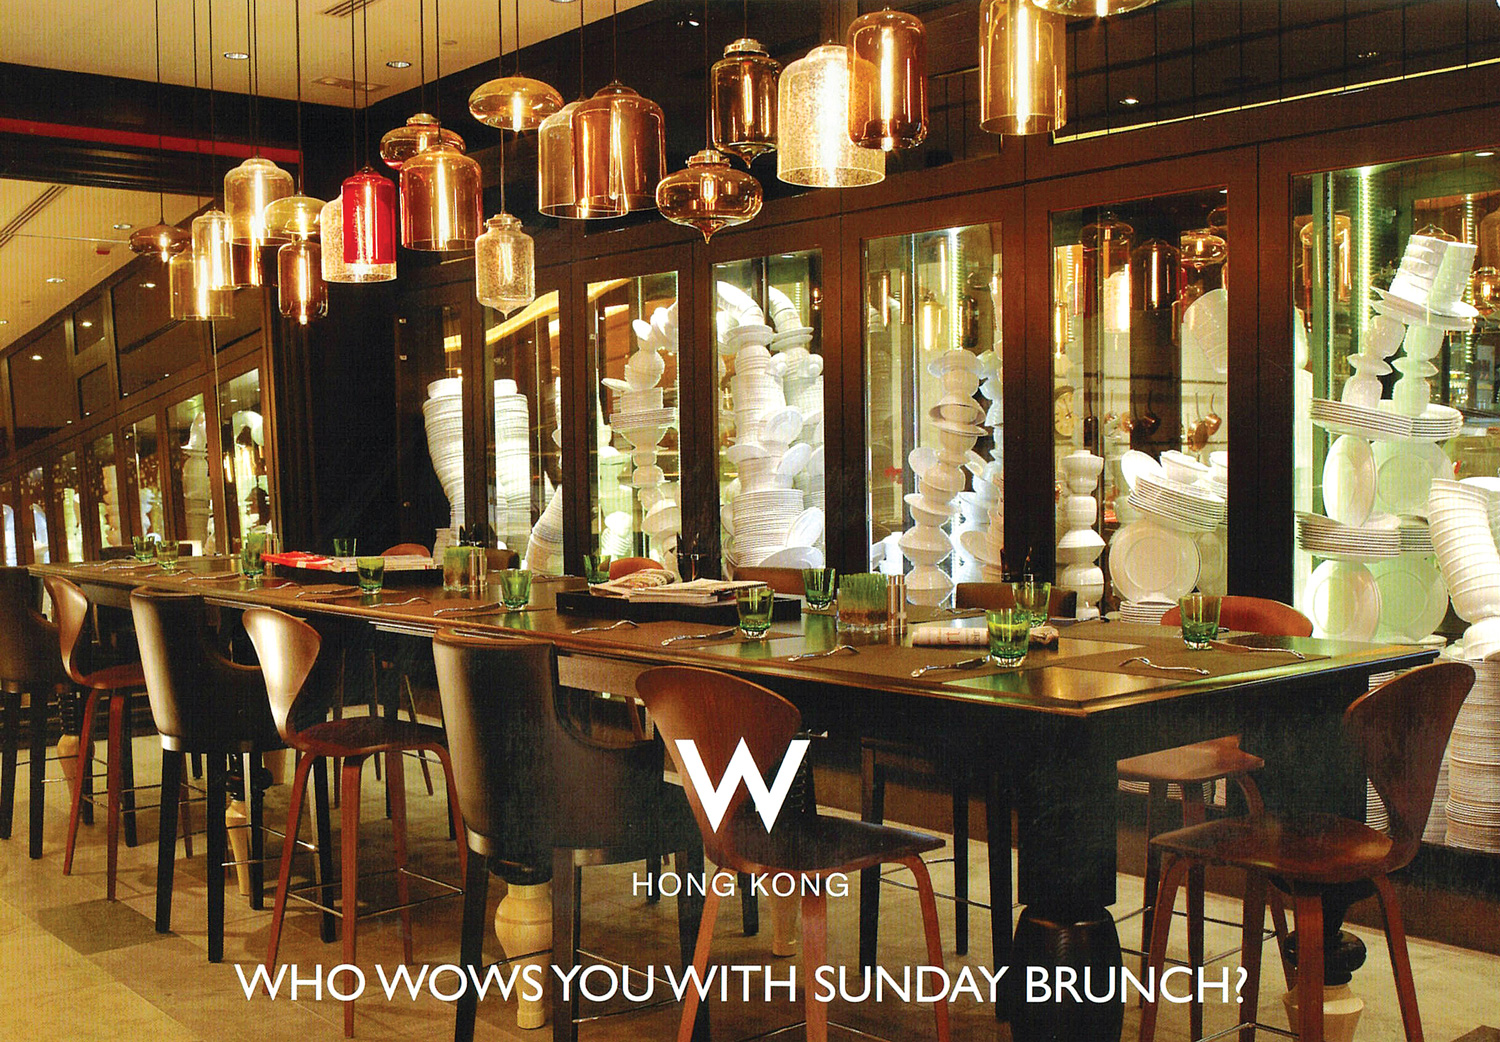 & W Hong Kong - Pendant Lighting to Accentuate Luxury Dining